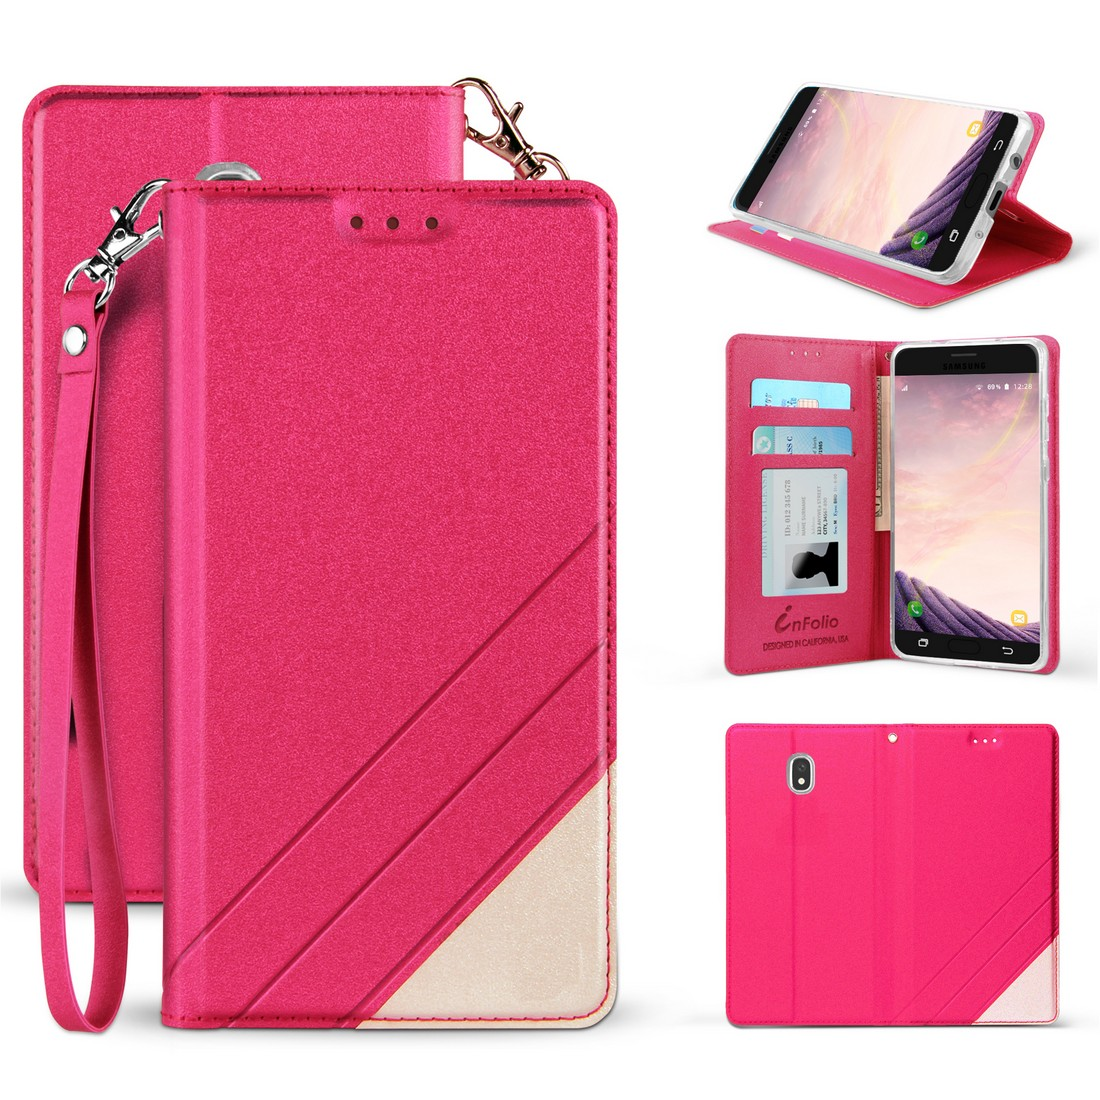 BC Synthetic PU Leather Magnetic Flip Cover Wallet Case and Atom Cloth for Samsung Galaxy J7 Star (T-Mobile) - Hot Pink